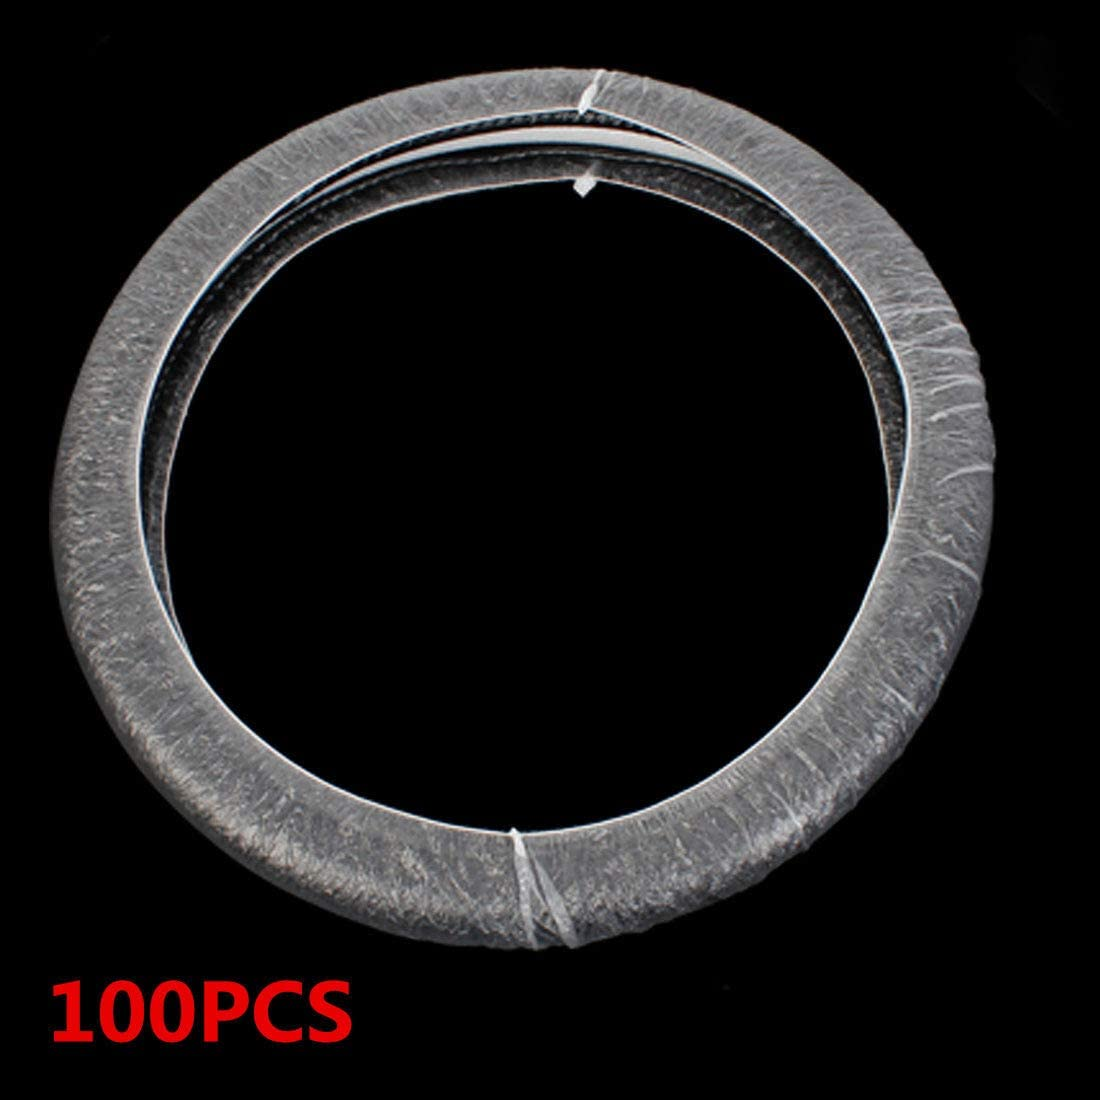 ACHICOO 100pcs//Set Universal Disposable Plastic Steering Wheel Cover White Plastic Steering-Wheel Cover Safe and Frequent Replacement